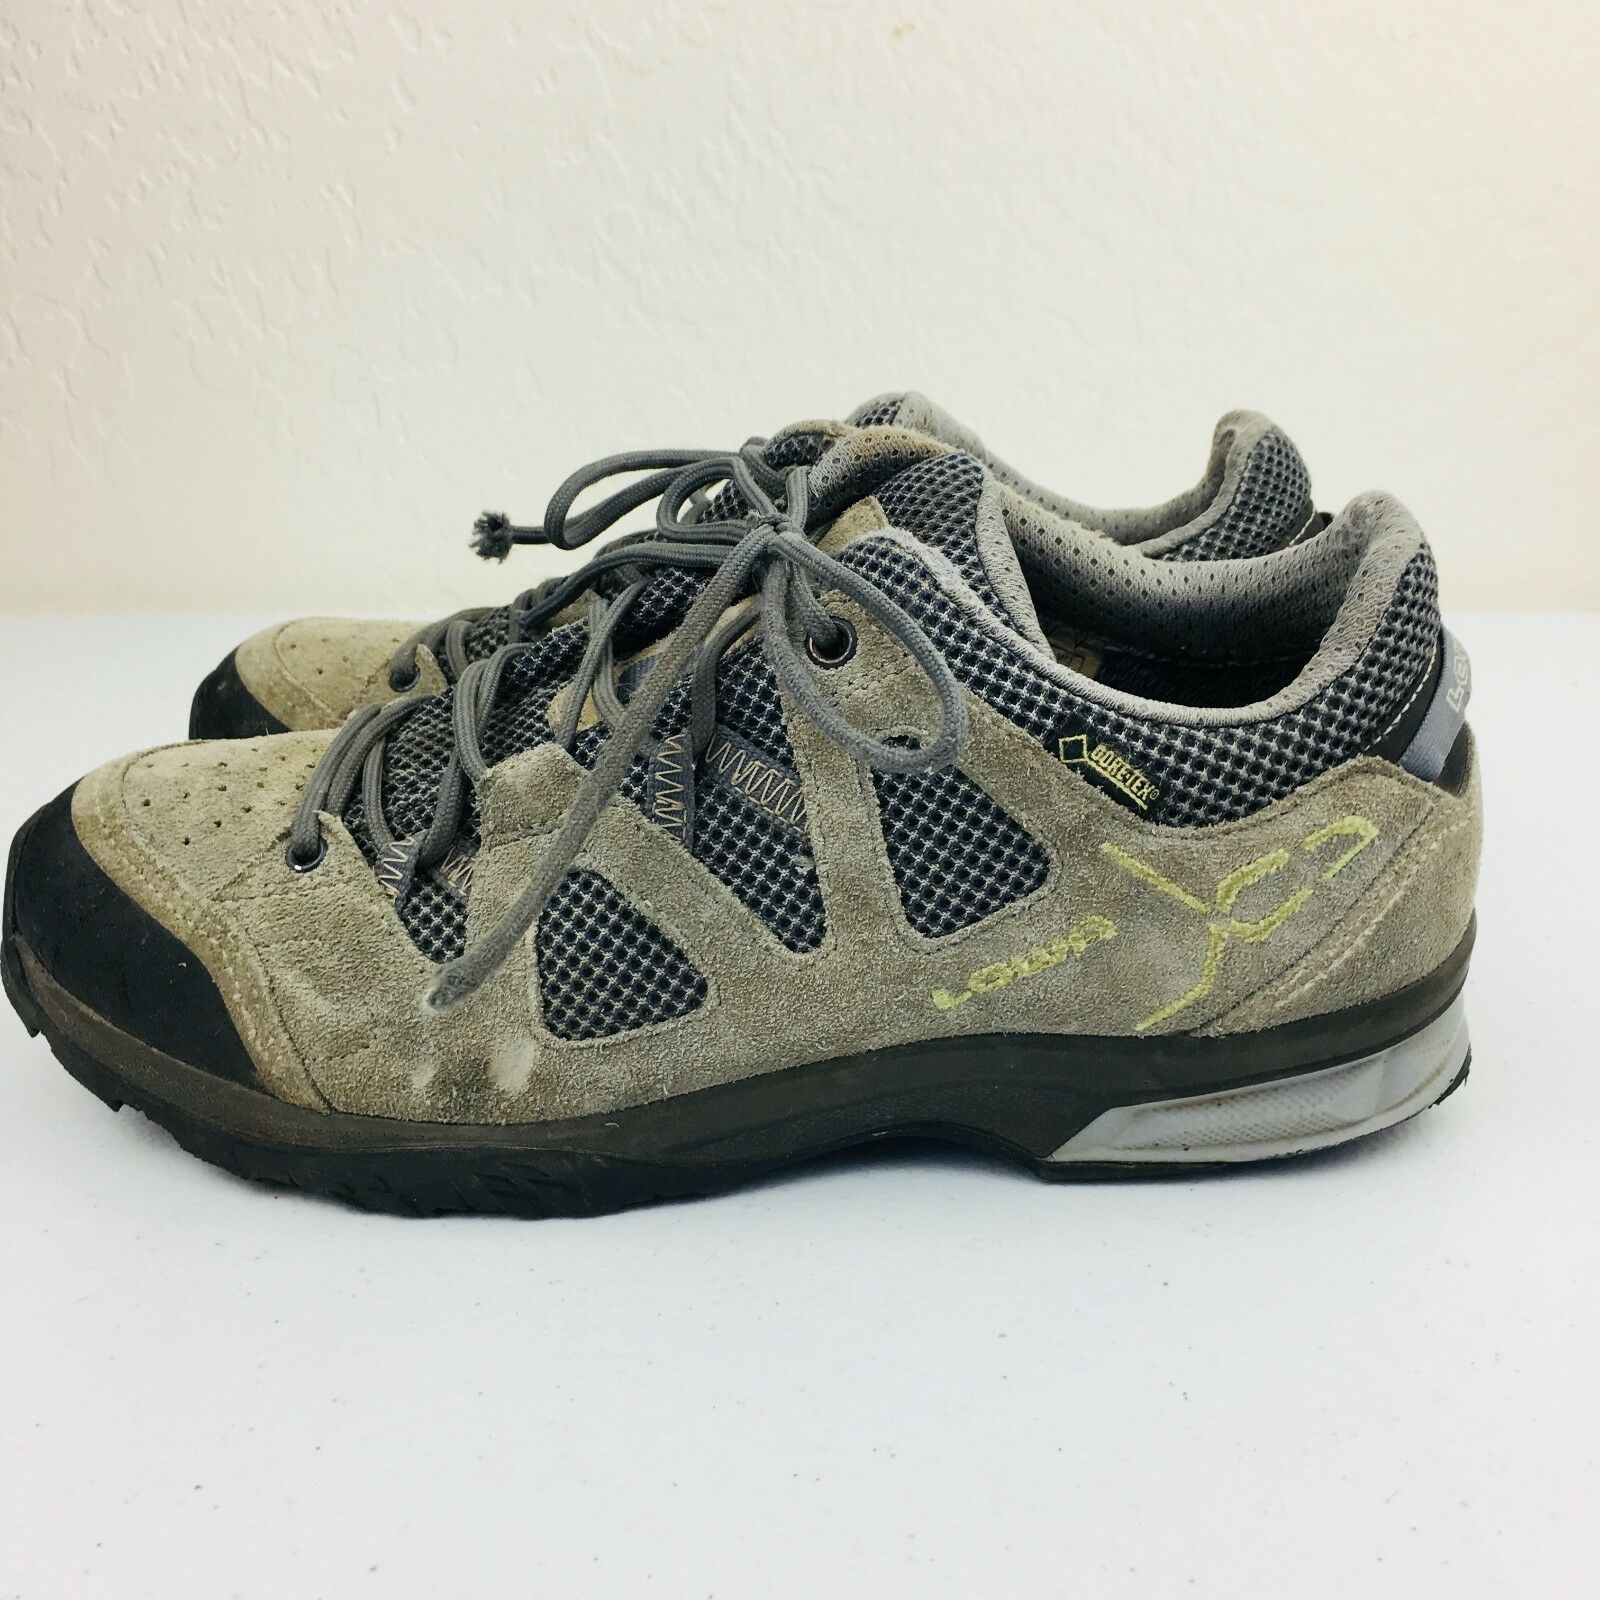 Lowa Phoenix Gore-Tex Lo Low Low Low Top Hiking Shoes Uomo Suede Outdoor Trail Size 7 615c3c